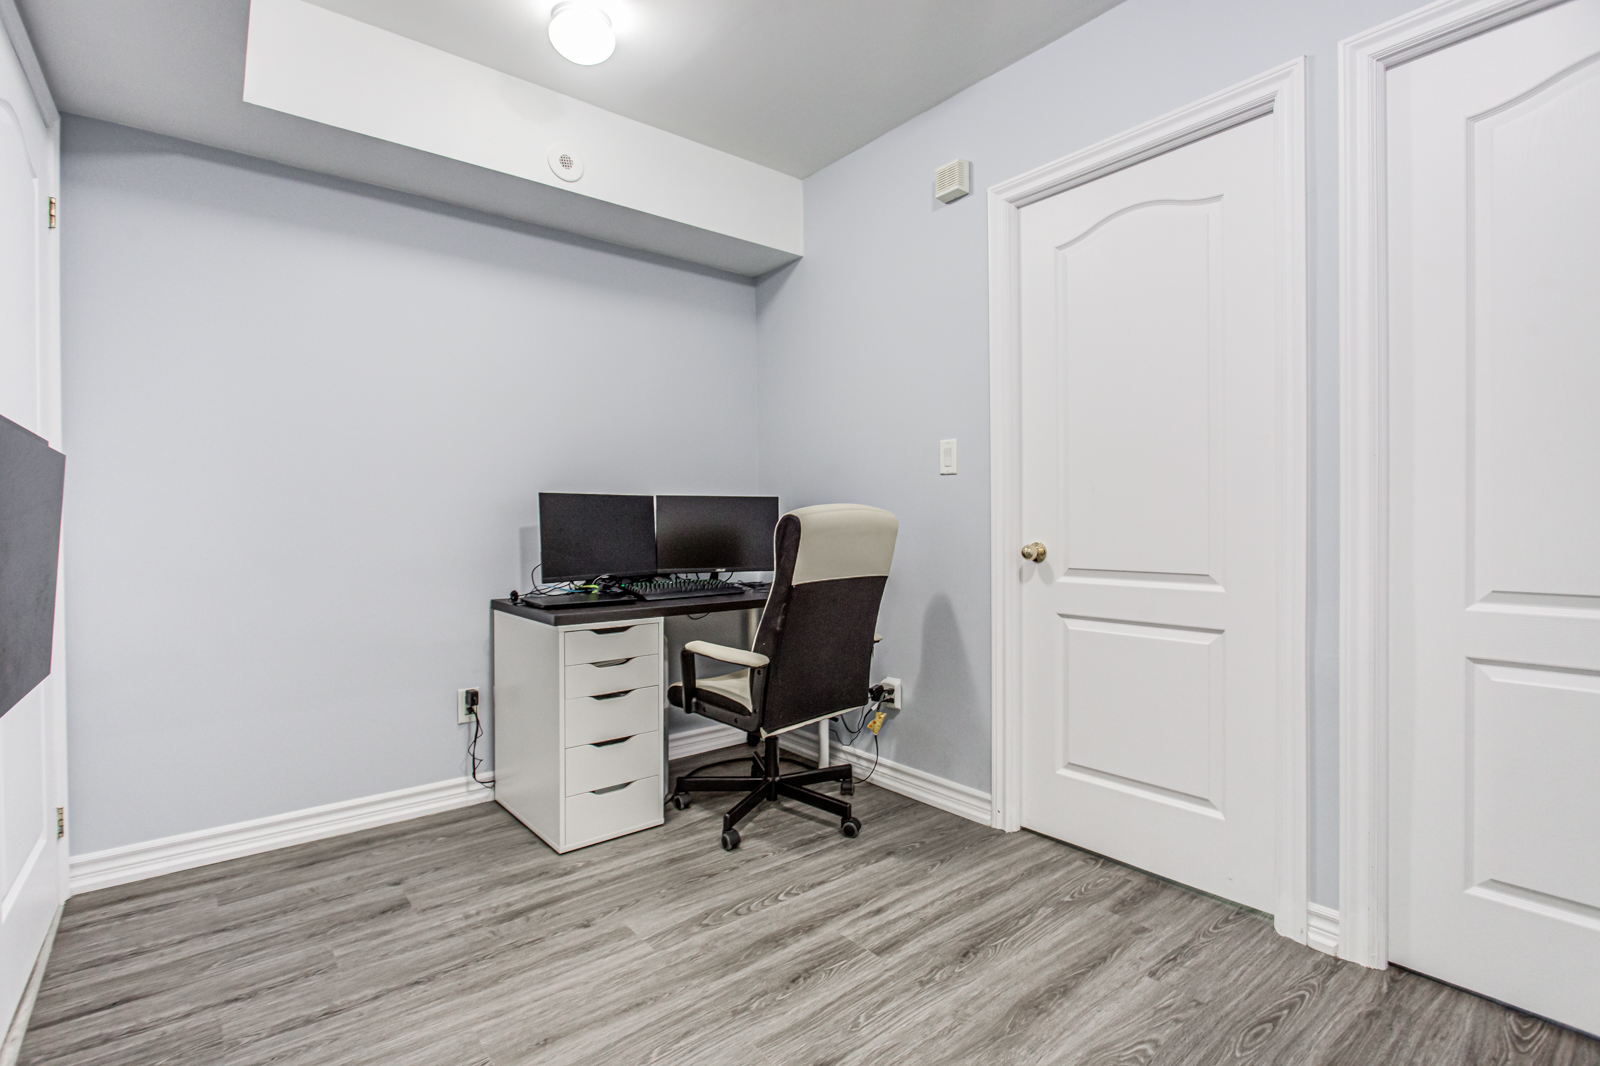 Home office with desk, chair with wheels, 2 computer monitors, and gray filing cabinet.